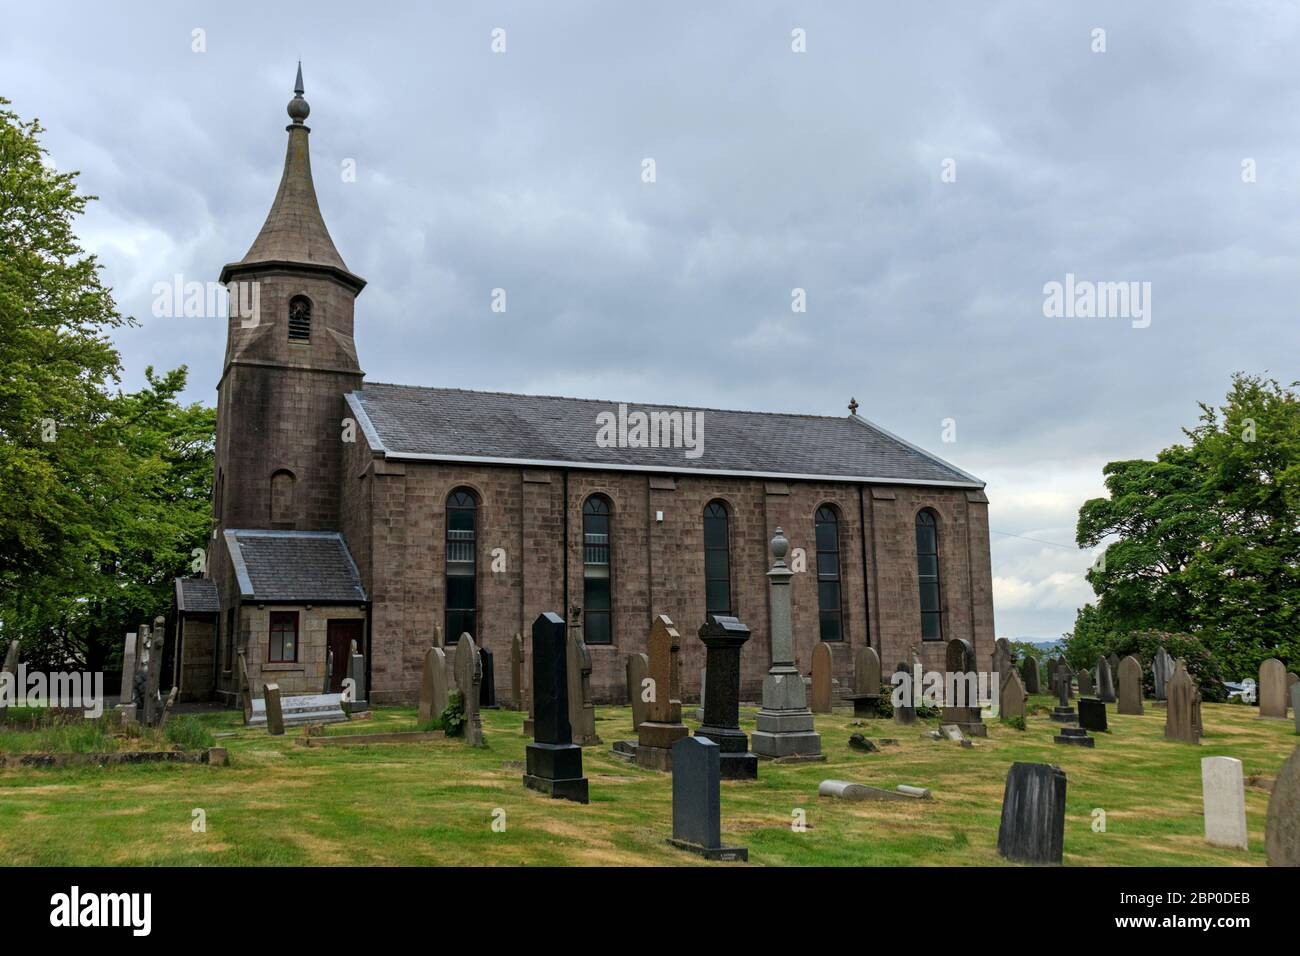 St. Paul's Church, Withnell Stock Photo